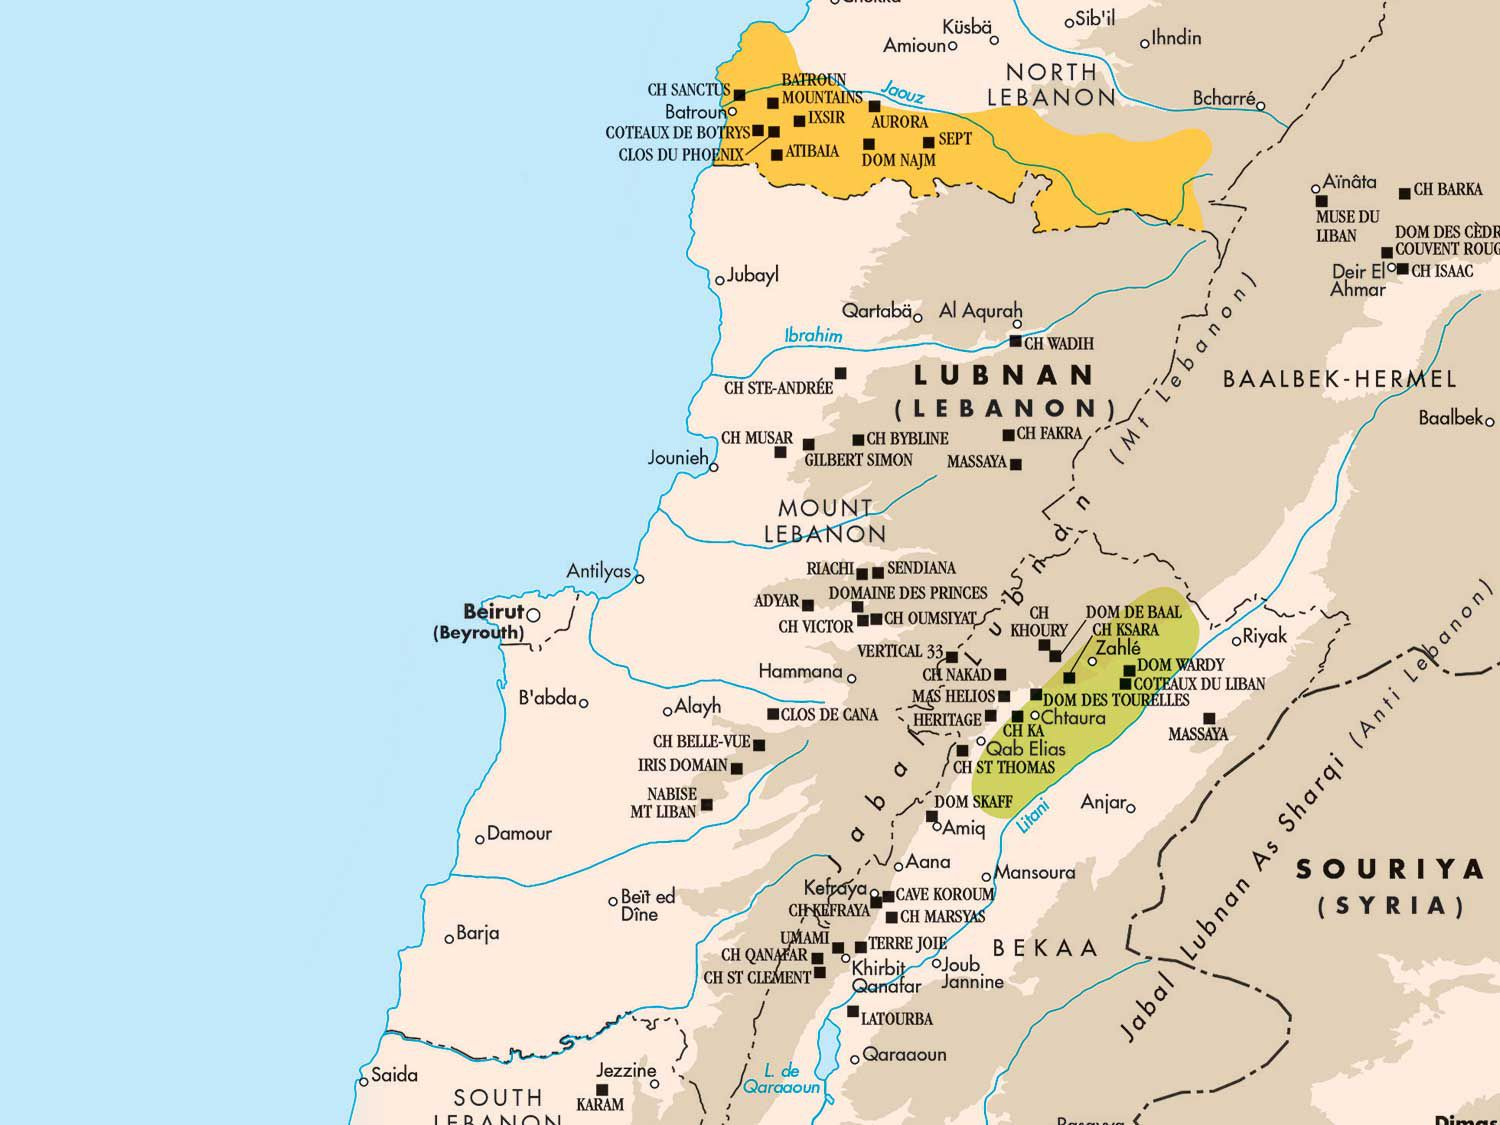 The latest edition of <em>The World Atlas of Wine</em> wants us to keep our eyes on Lebanon's vino.